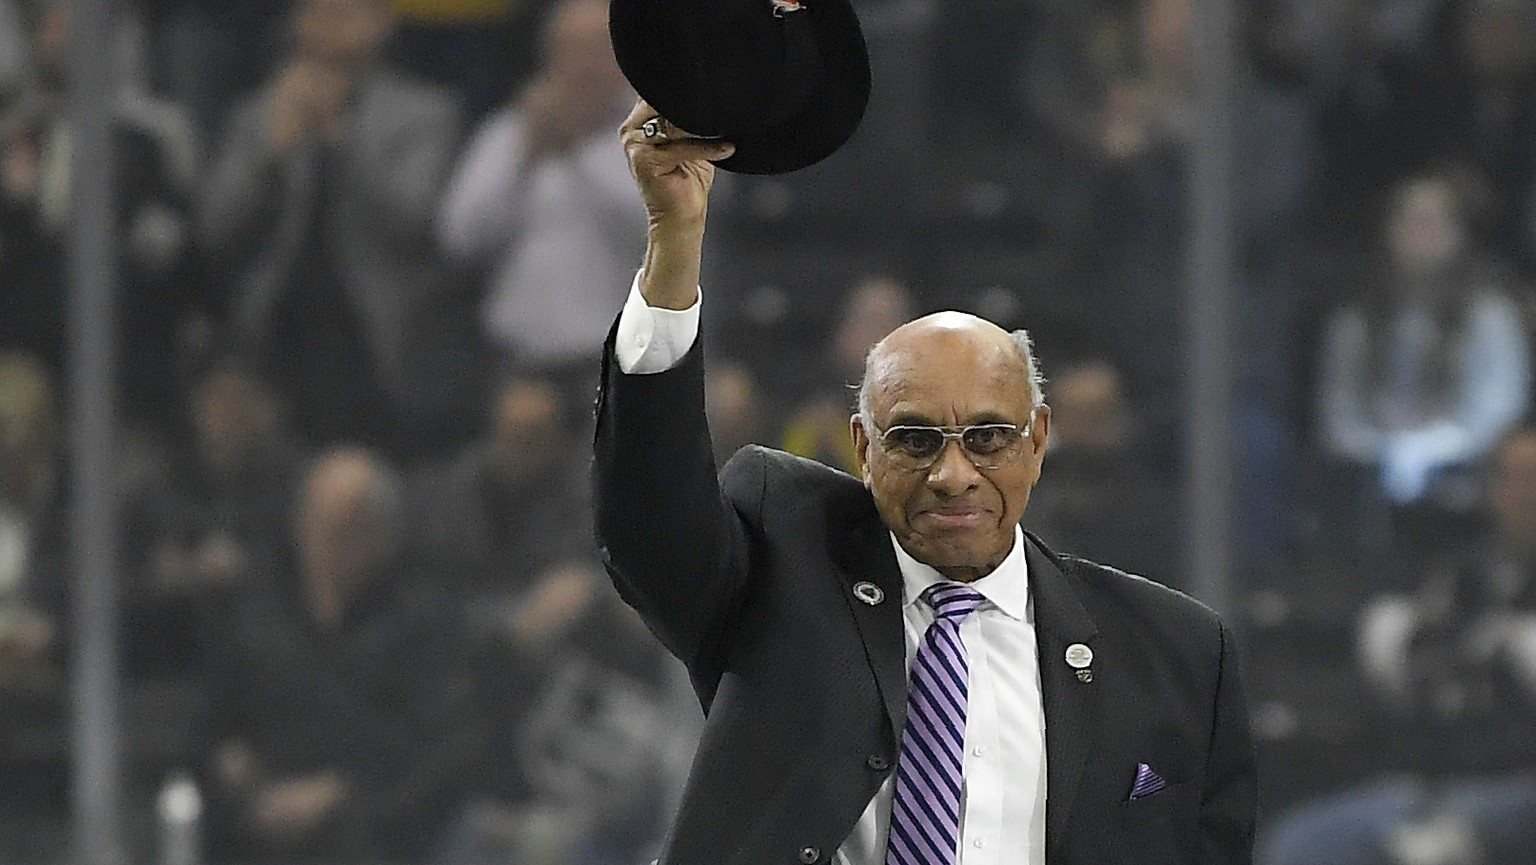 FILE - In this Feb. 22, 2018, file photo, former hockey player Willie O'Ree waves to the crowd after being honored prior to an NHL hockey game between the Los Angeles Kings and the Dallas Stars, in Los Angeles. O'Ree was selected to the Hockey Hall of Fame, Tuesday, June 26, 2018. (AP Photo/Mark J. Terrill, File)